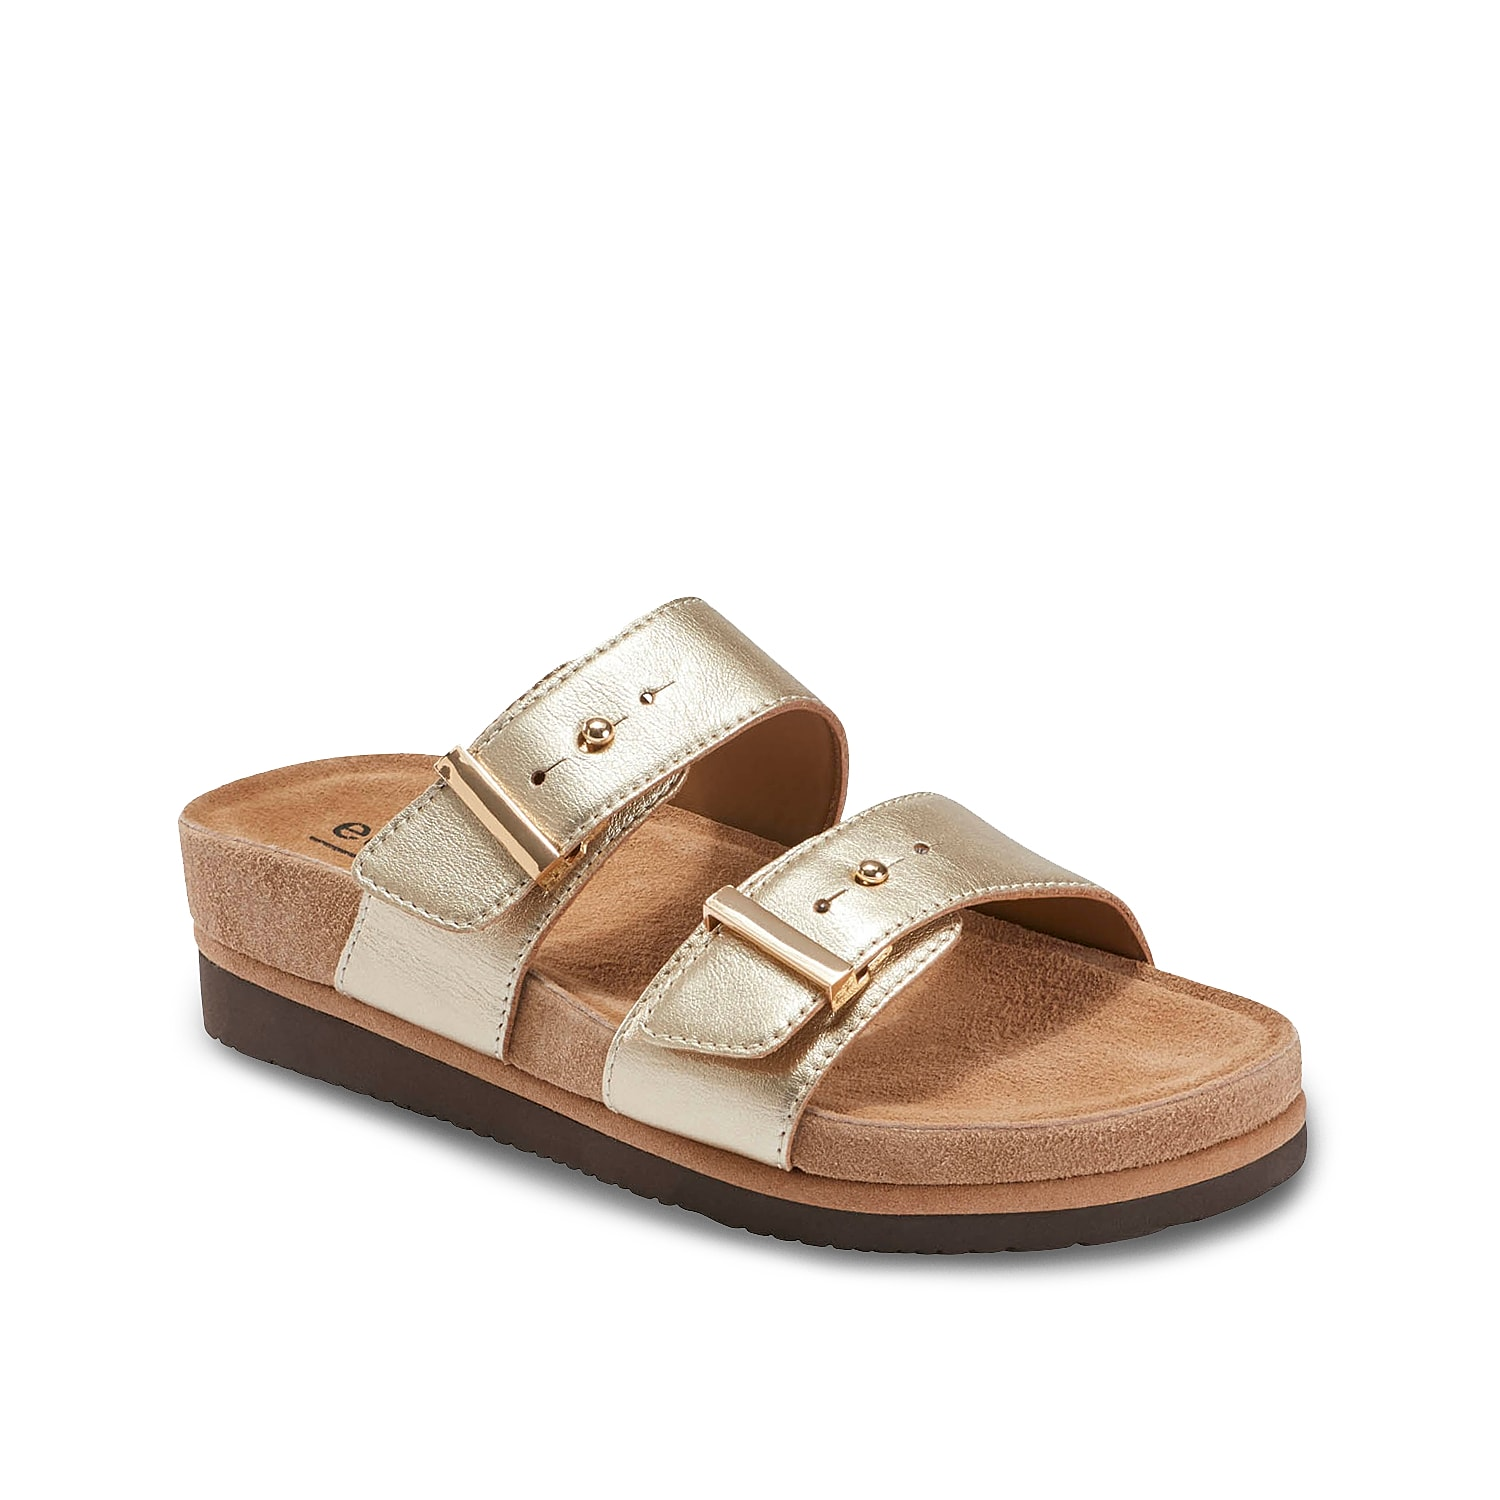 Stride in remarkable comfort of the Canyon slide sandal from Earth Footwear. Boasting a premium leather upper in two-piece silhouette, this slip-on sandal has an anatomically contoured PowerPath® footbed and rigid EVA sole for everlasting support.